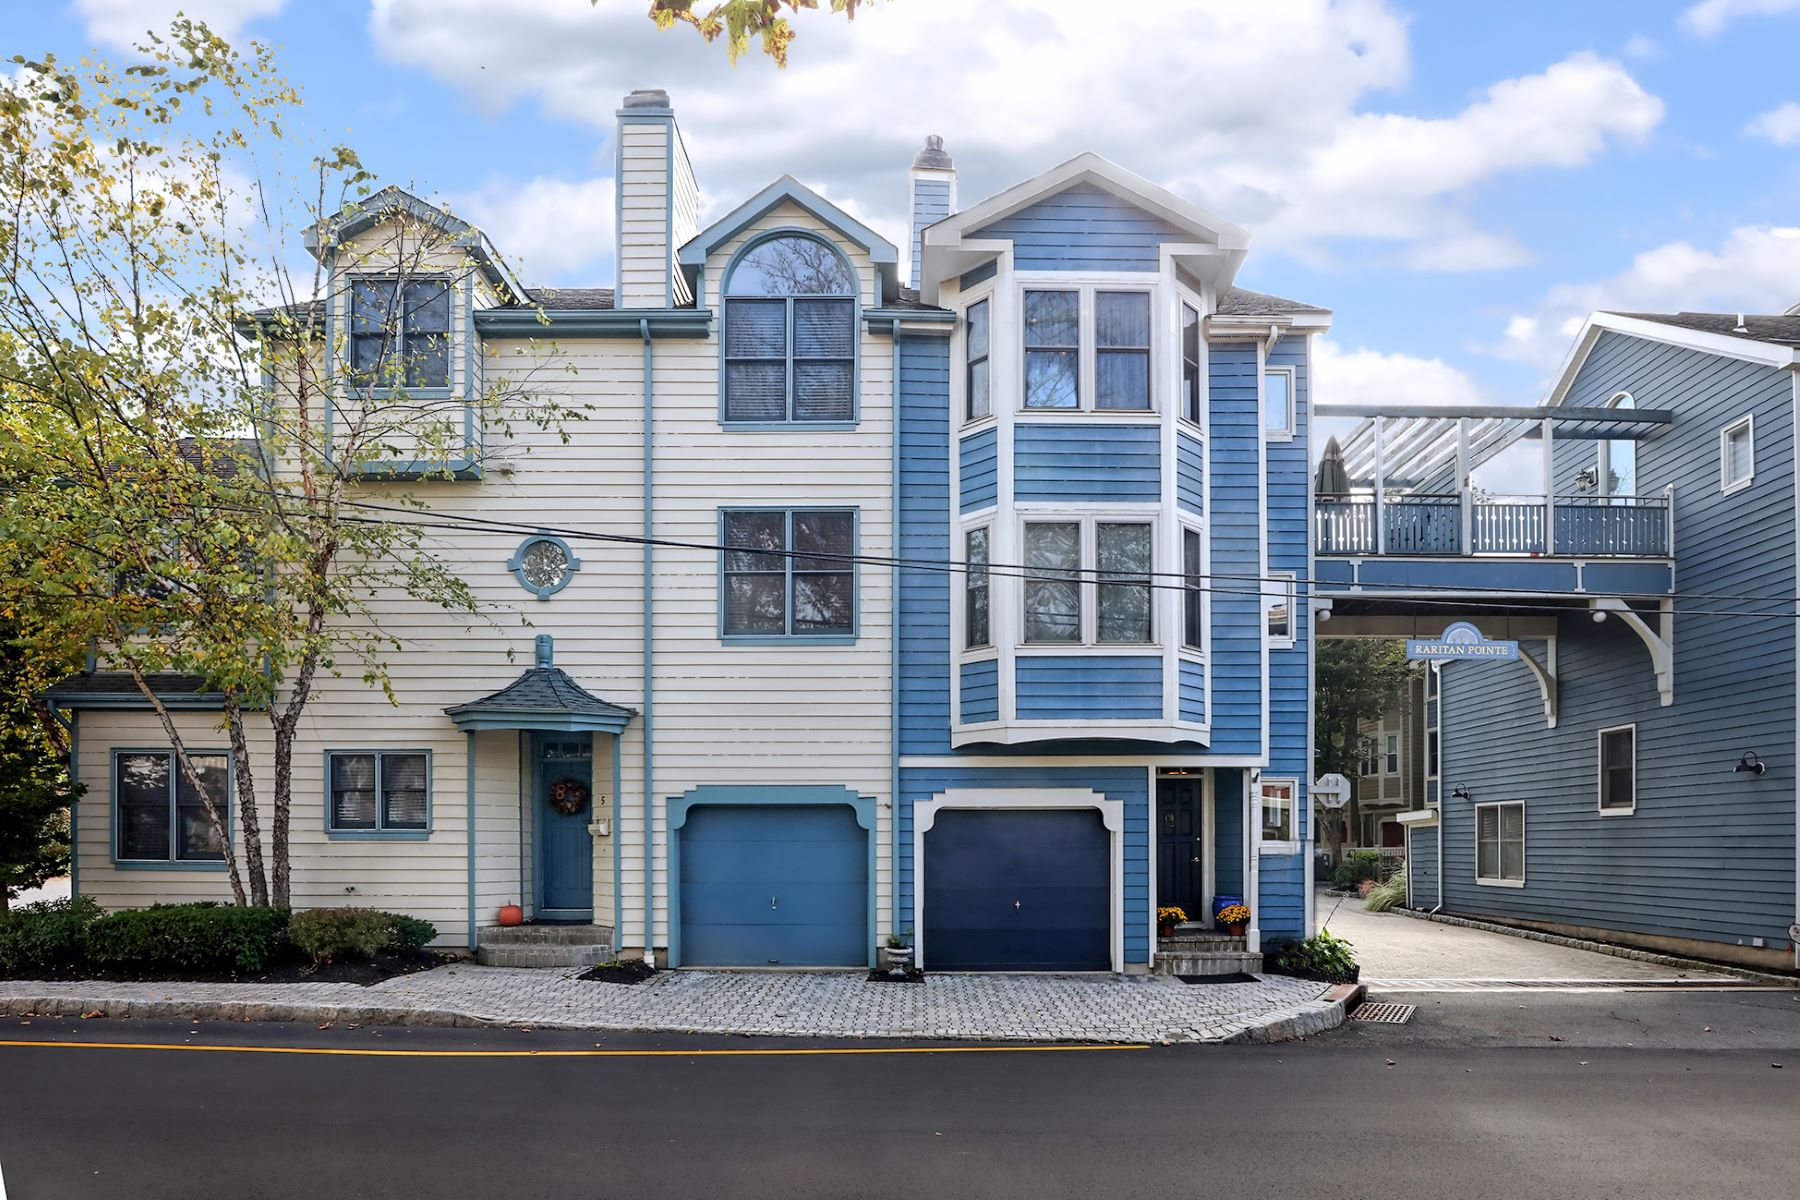 Townhouse for Sale at Reinvent Your Life in Raritan Pointe 4 Raritan Pointe, Lambertville, New Jersey 08530 United States